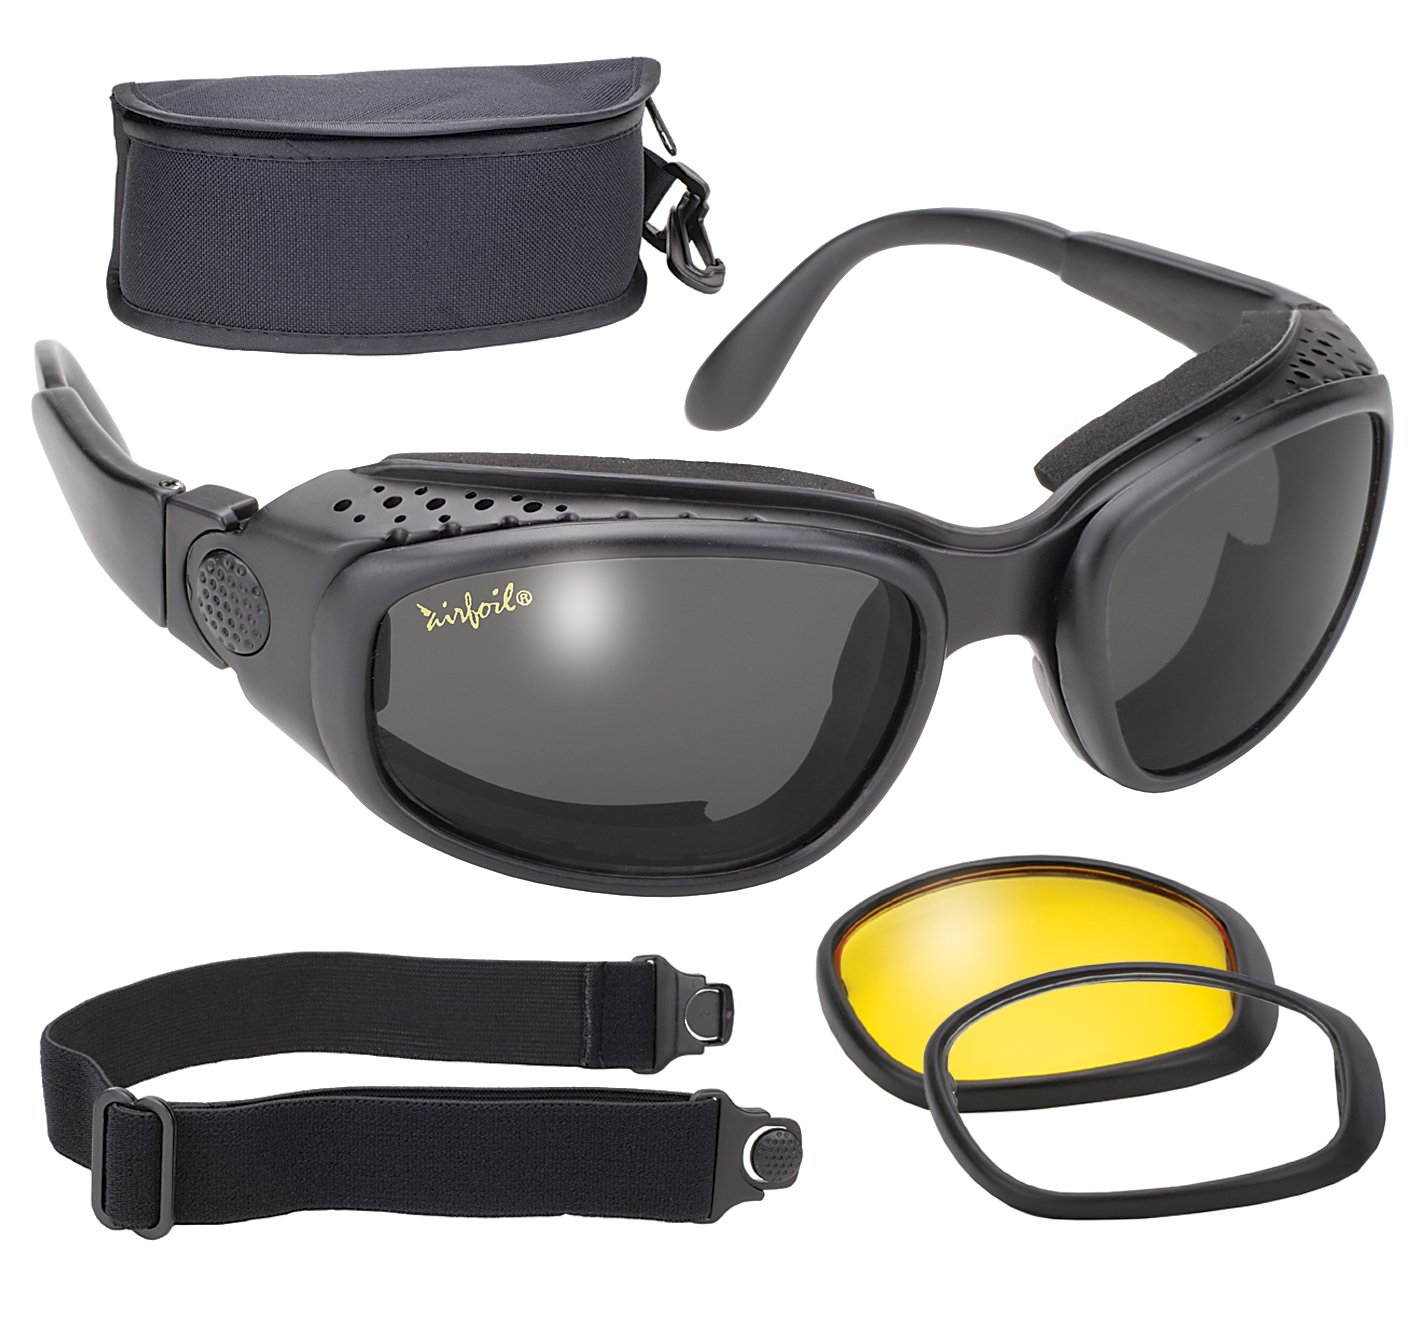 Pacific Coast 9100 Airfoil Windproof Lens Kit (Black Frame/Smoke, Yellow, Clear Lens) Pacific Coast Sunglasses Inc.